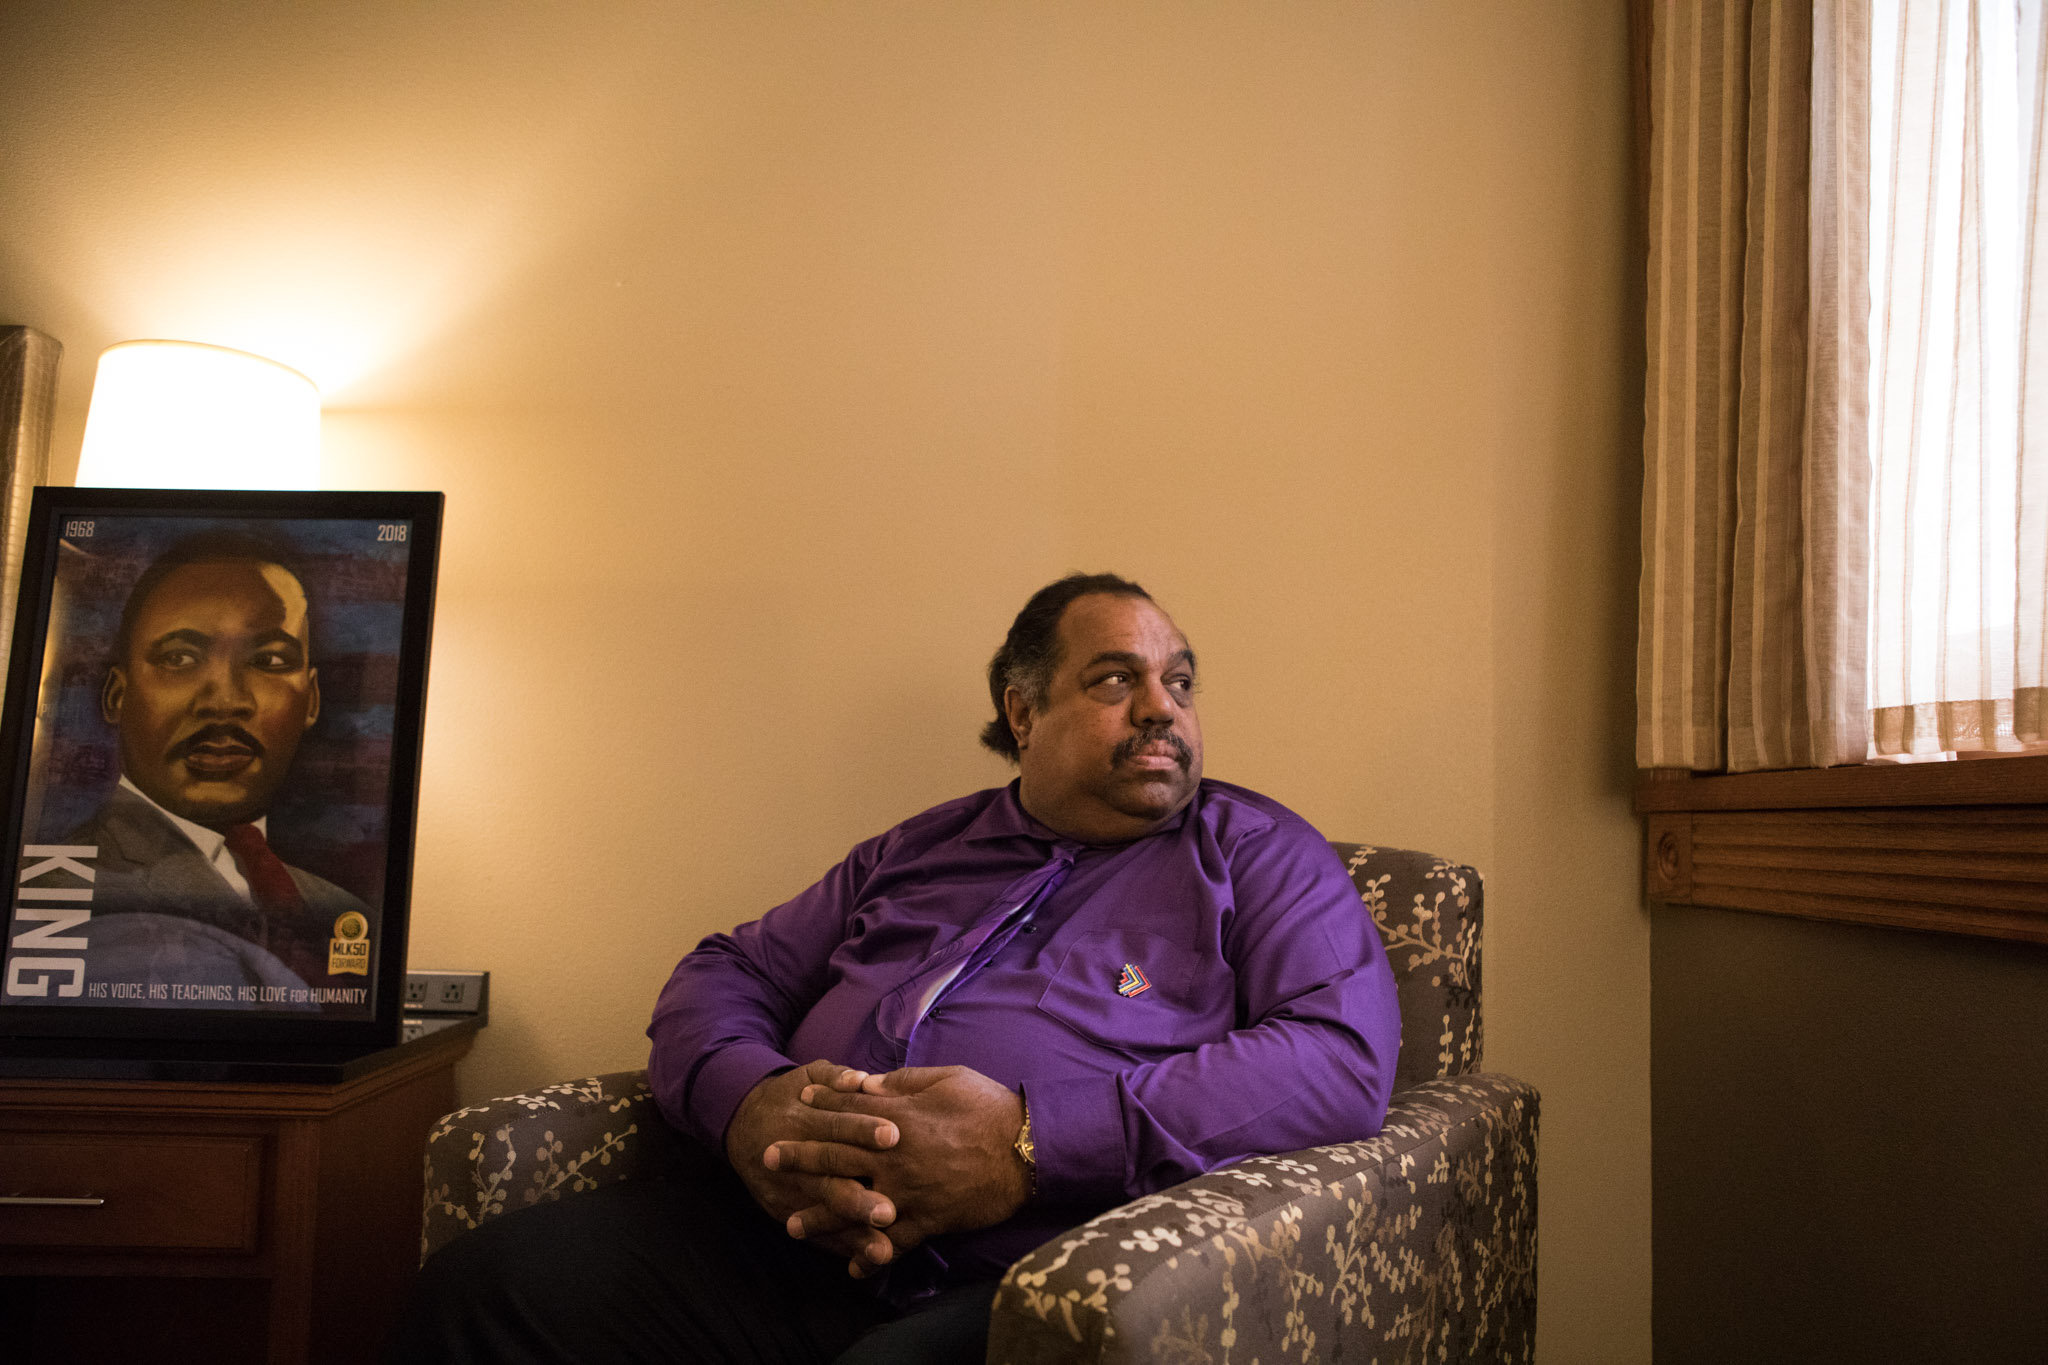 Daryl Davis sits next to his MLK, Jr. Commission poster awarded to him by DreamVoice and the MLK, Jr. Commission during DreamWeek.